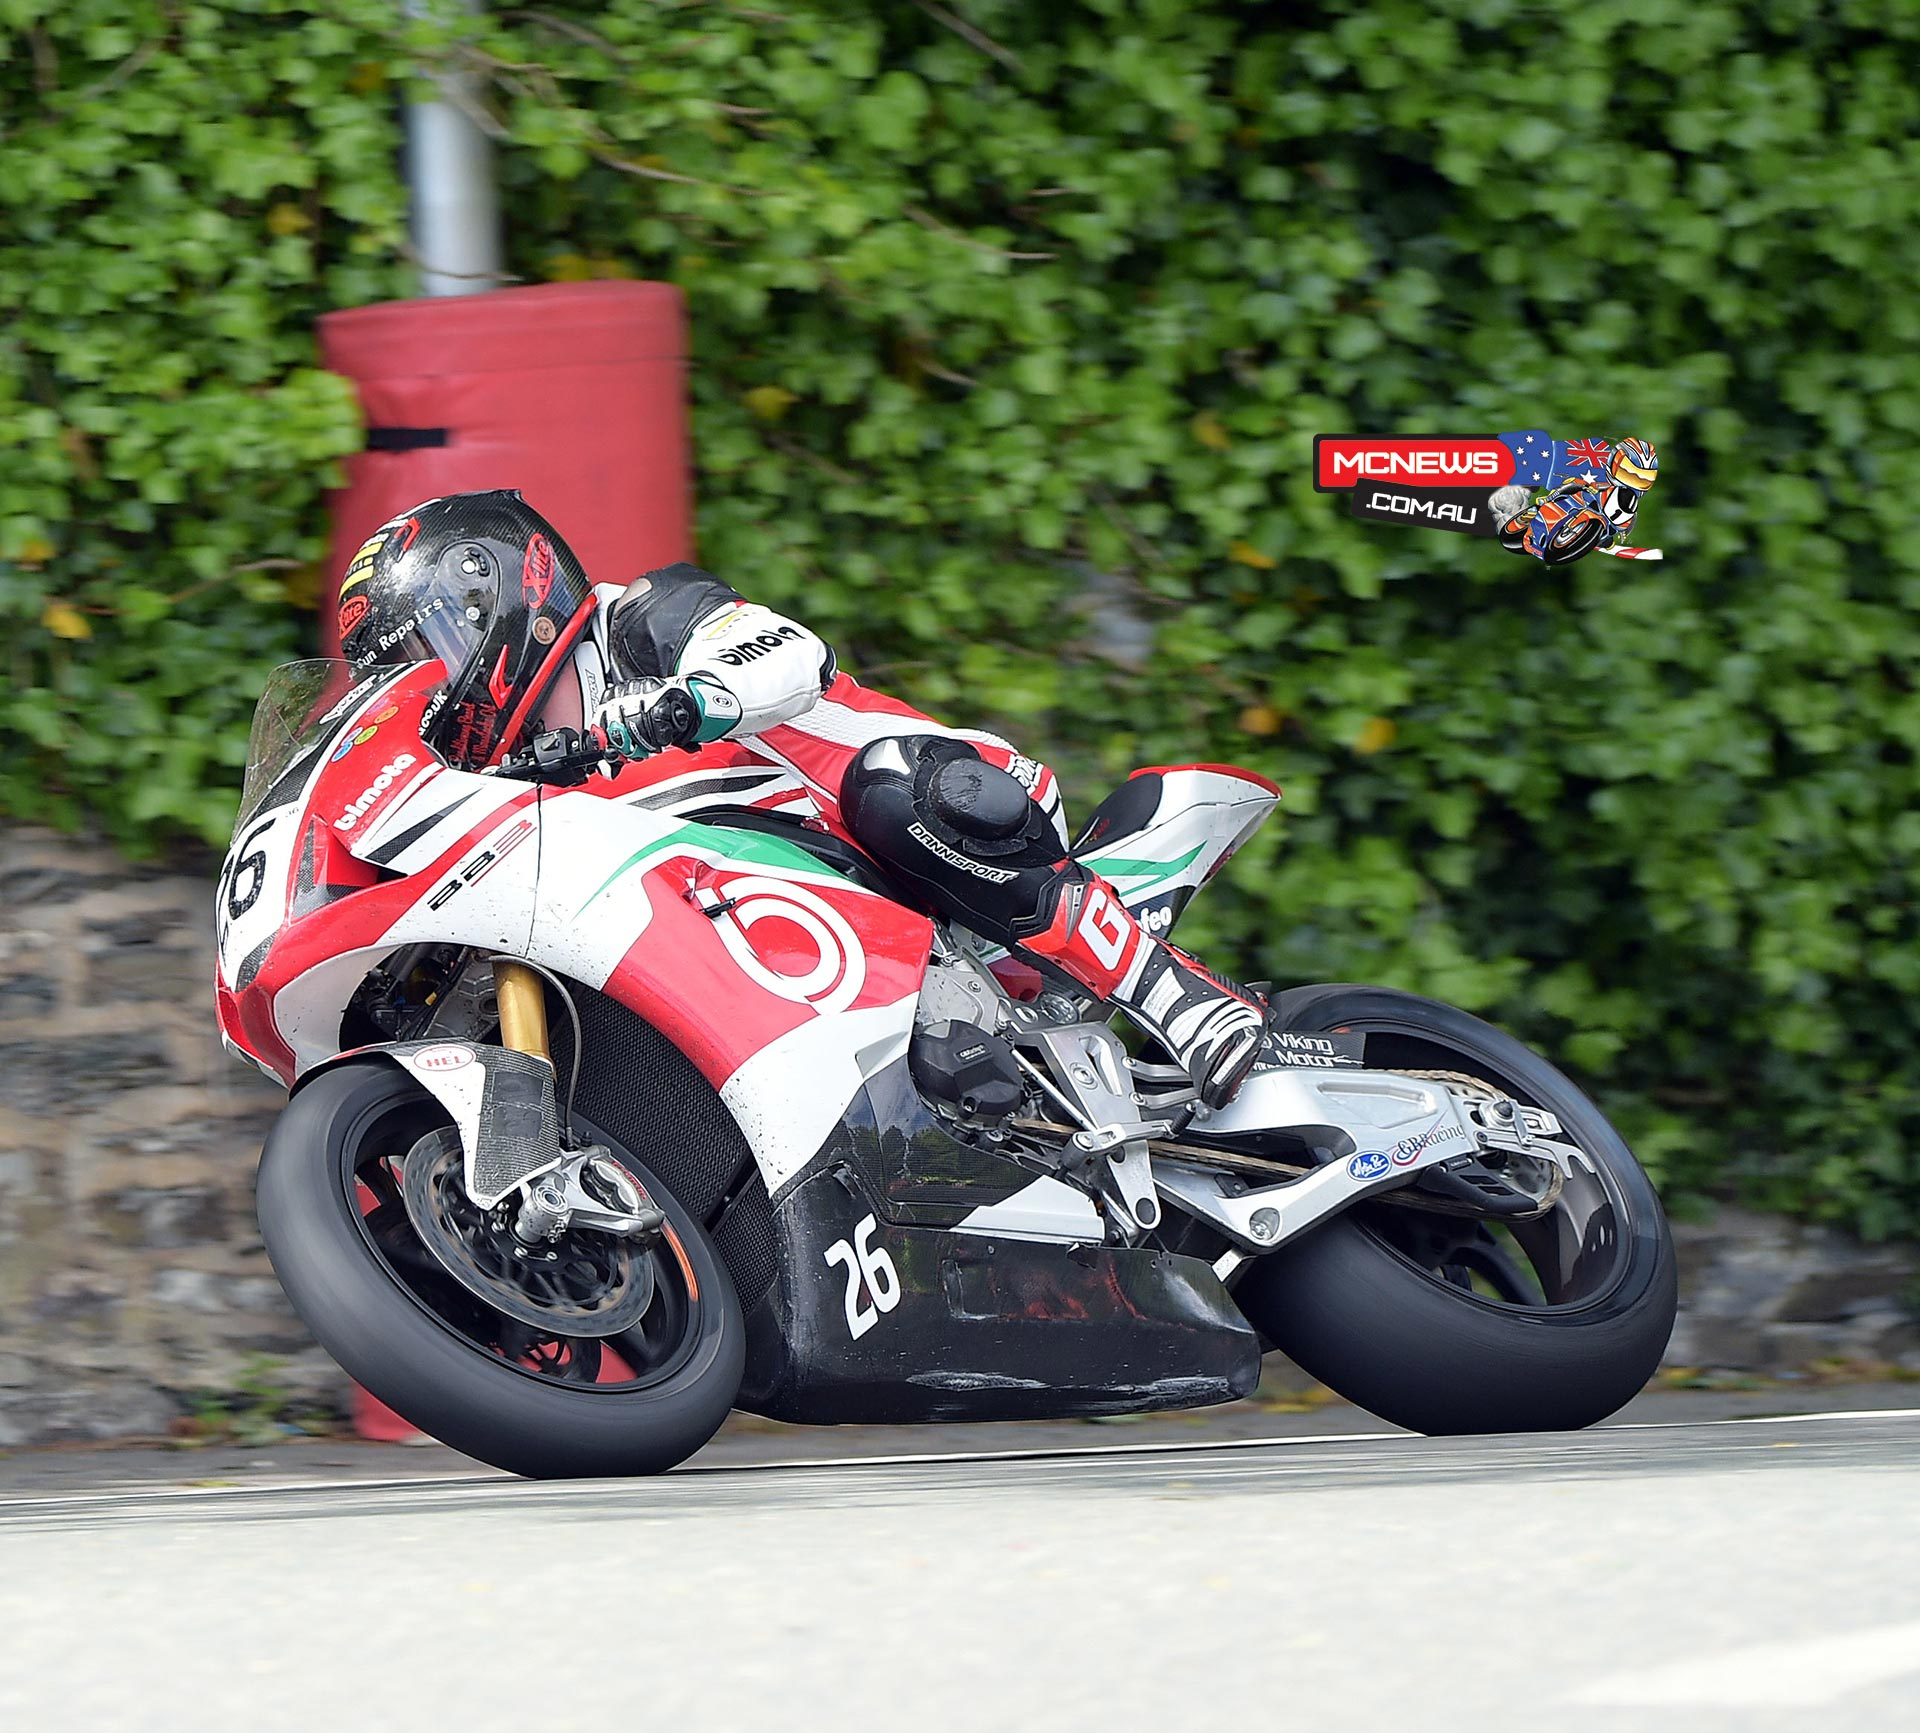 Ben Wylie secured respectable top 30 finishes in both the Superbike and Superstock races